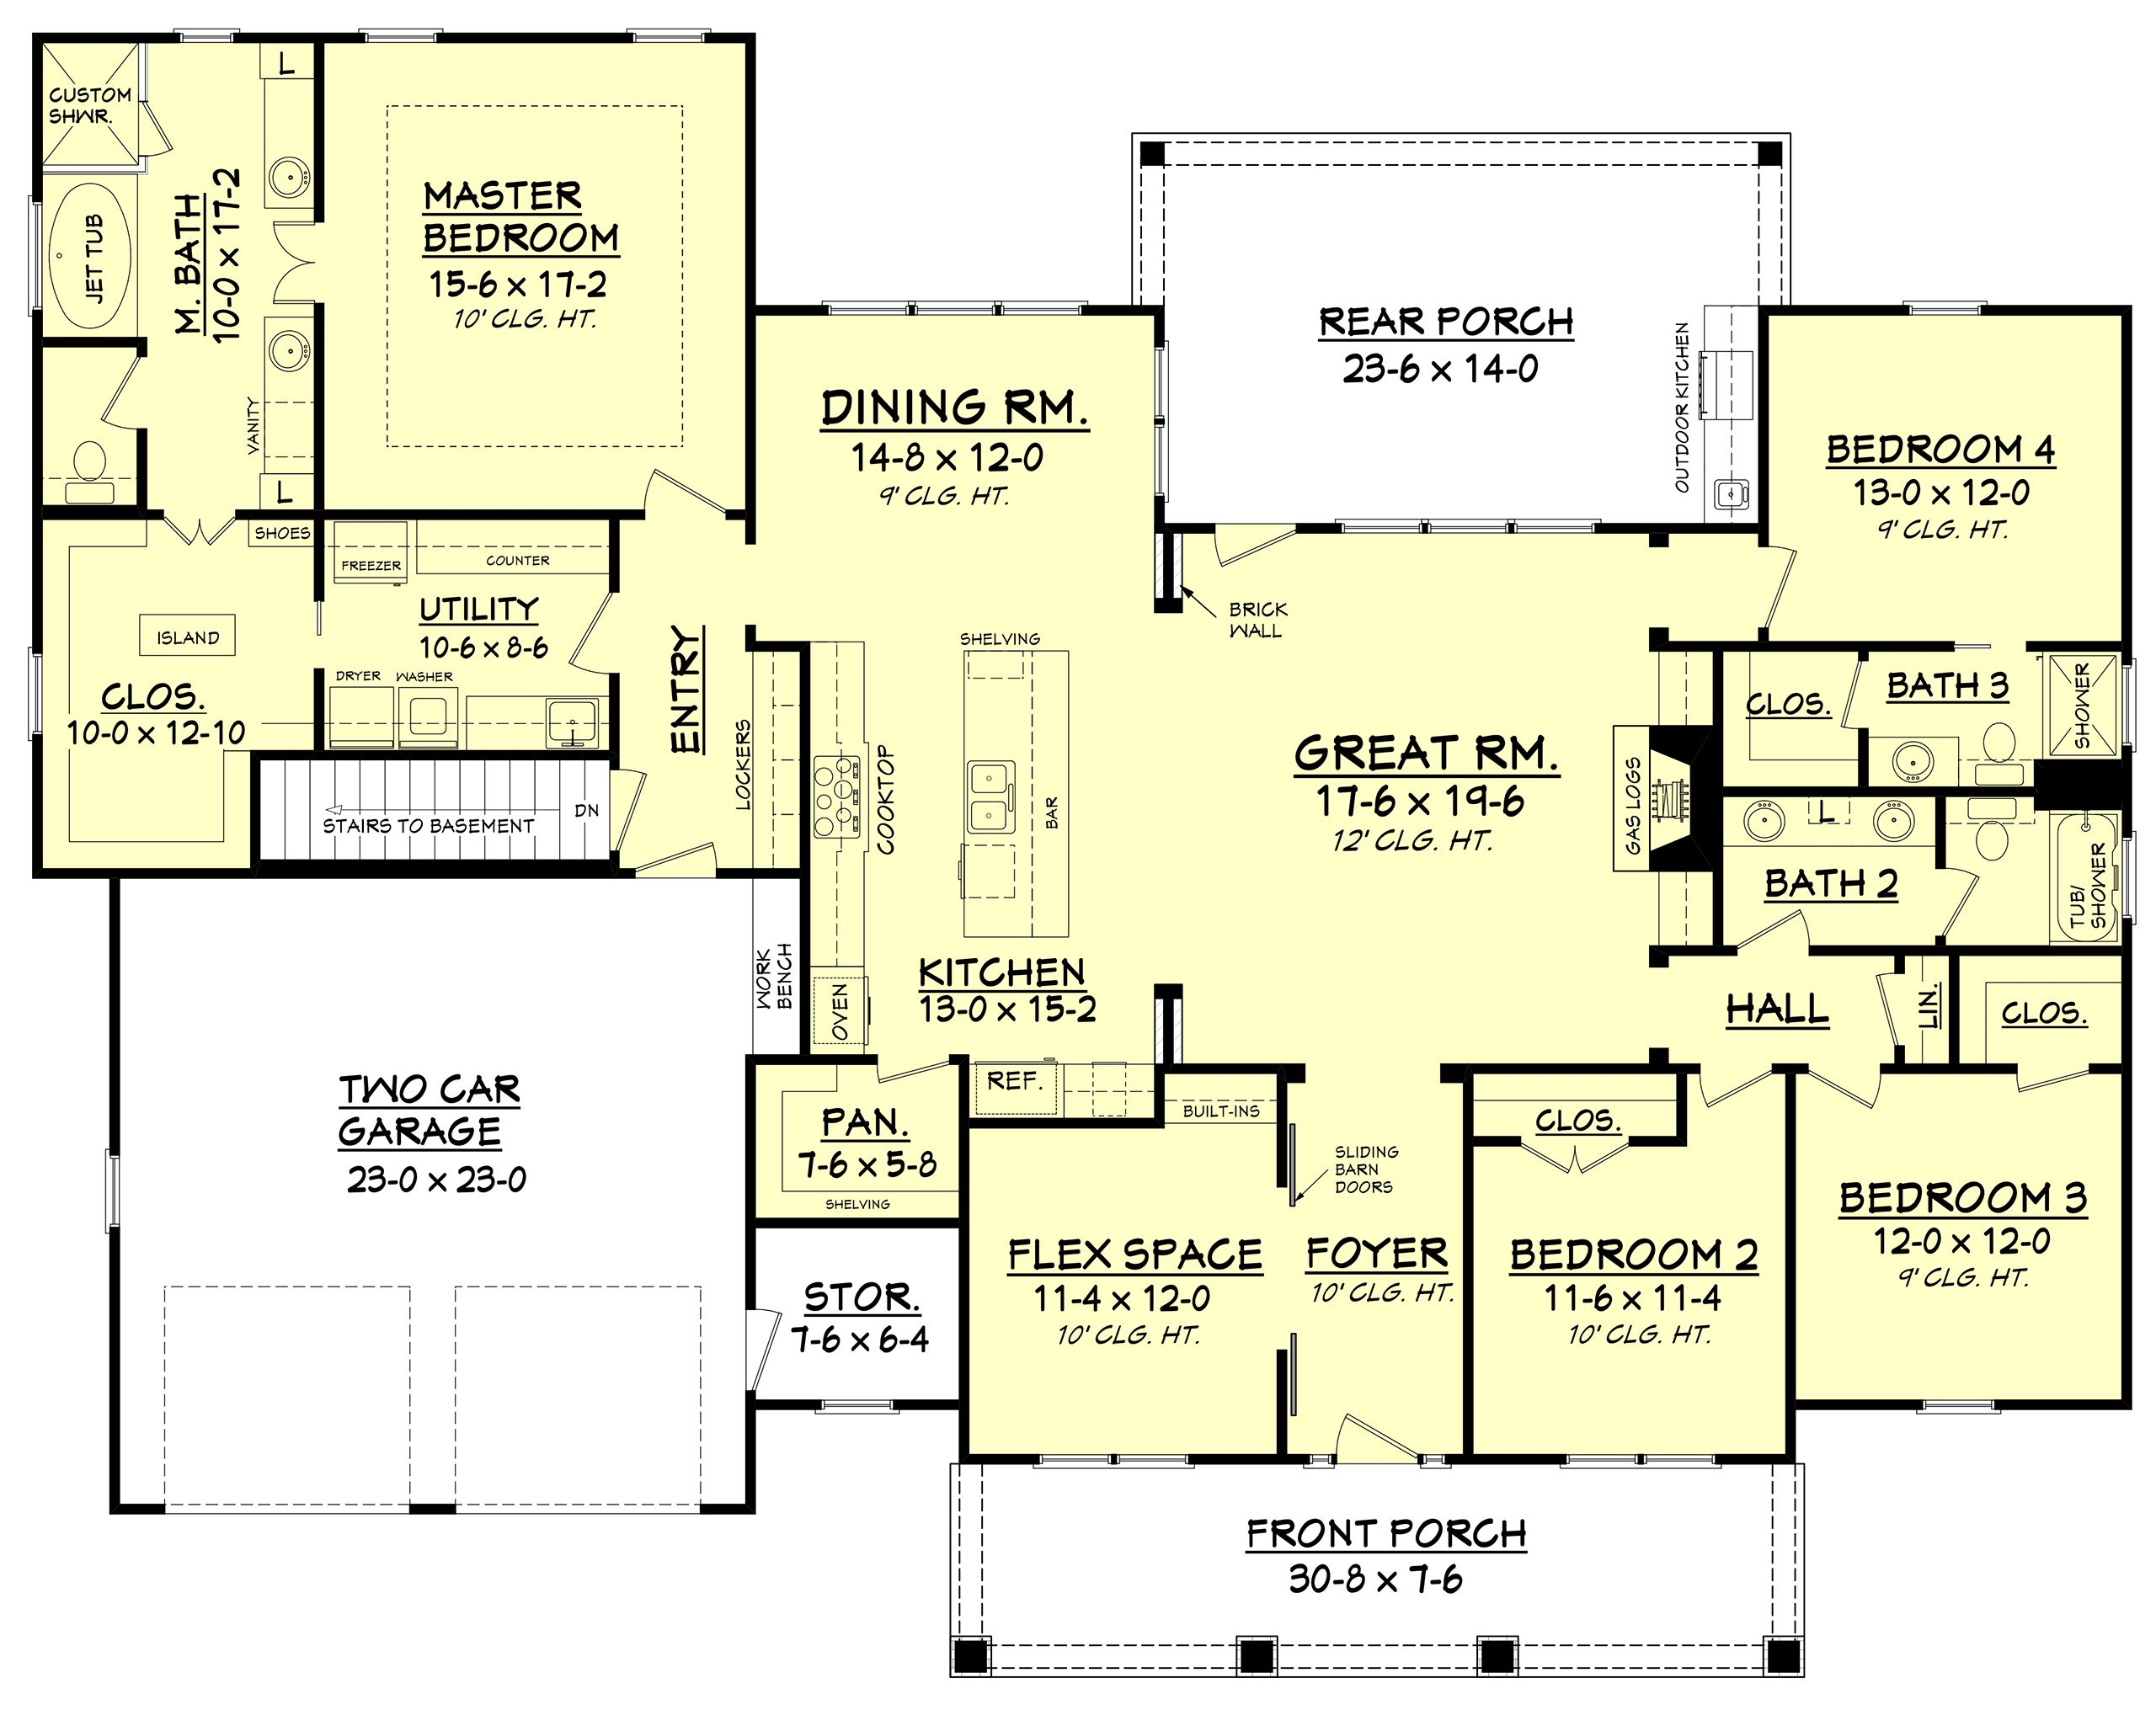 Craftsman style house plan 4 beds baths 2639 sq ft for One floor house plans with basement